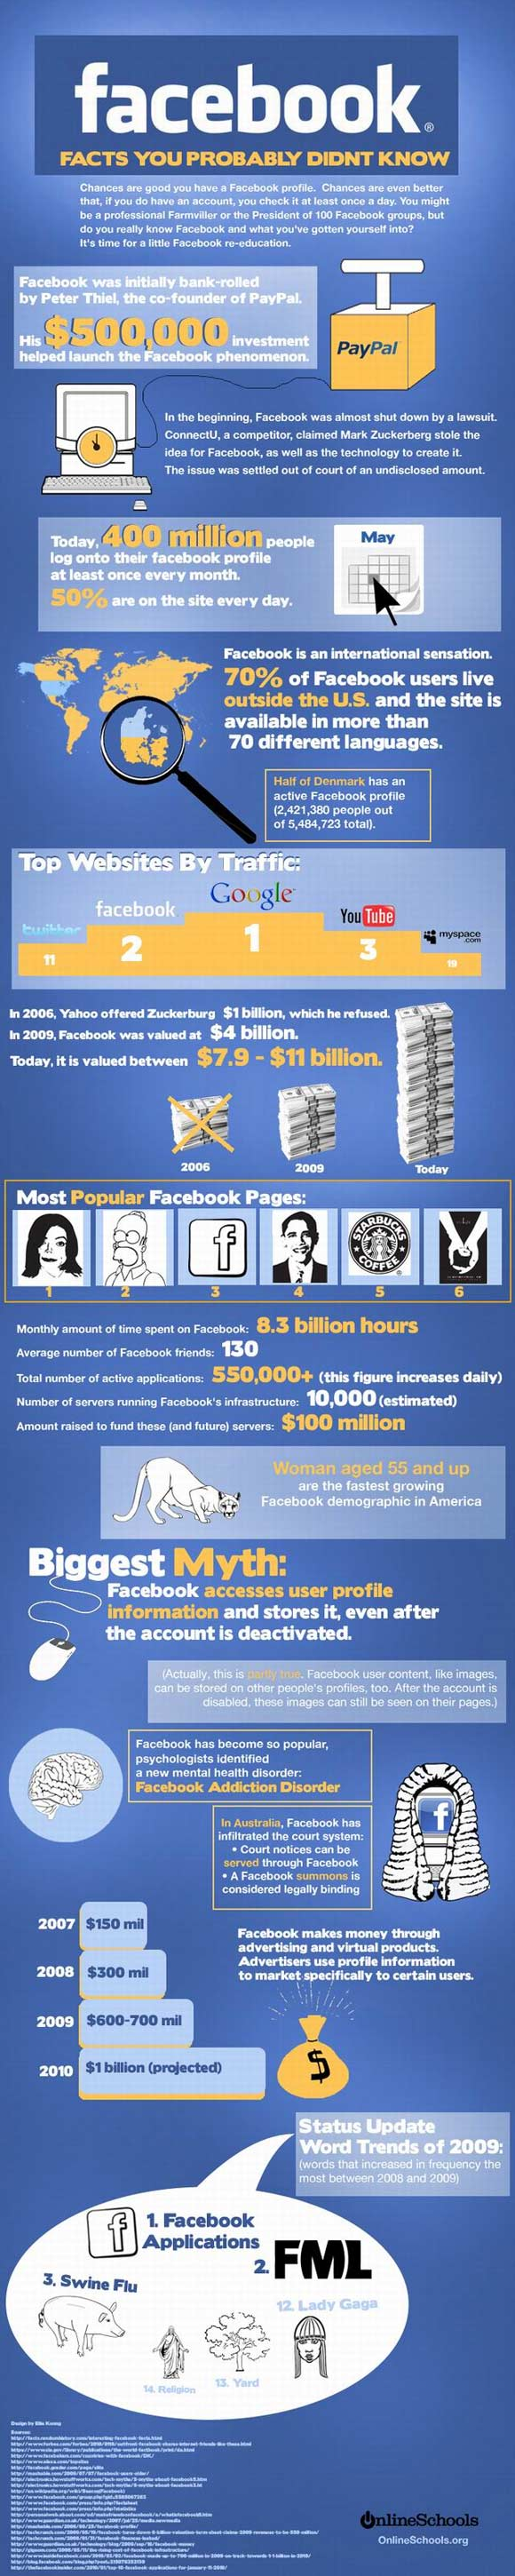 A feast of fascinating Facebook facts, just for you